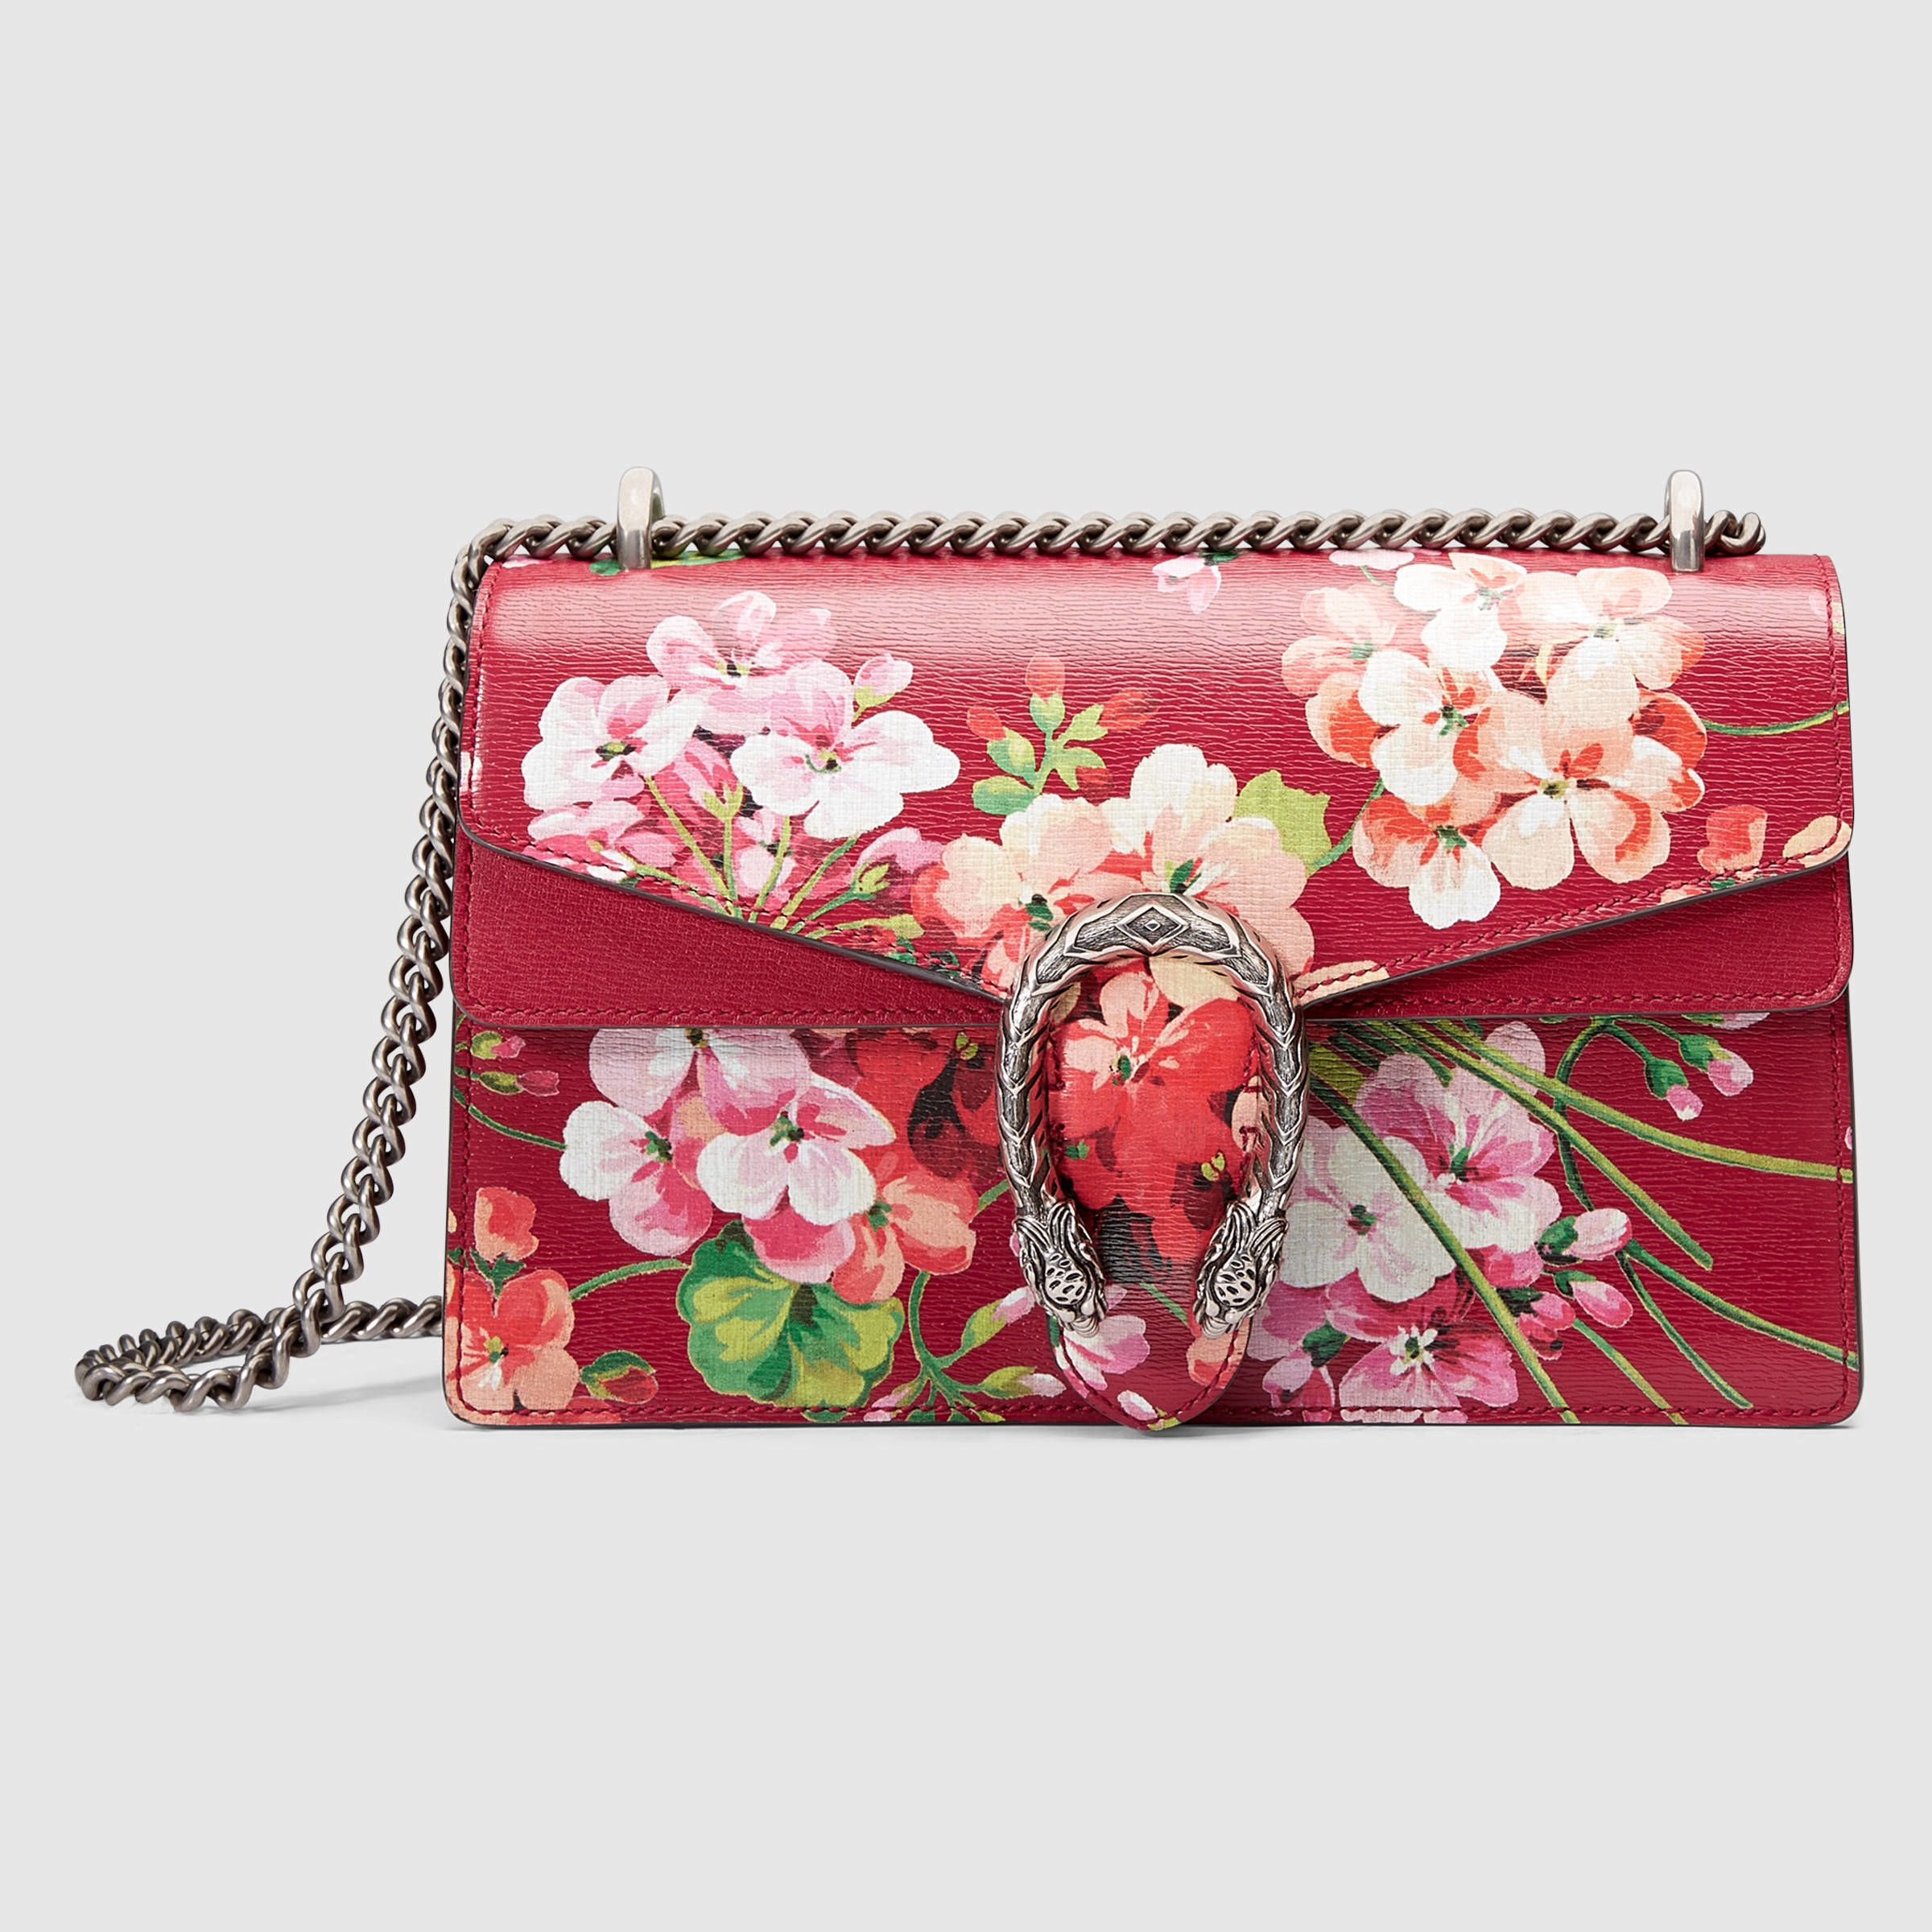 b90a180f88e Gucci Dionysus Blooms Shoulder Bag in Red (blooms leather)